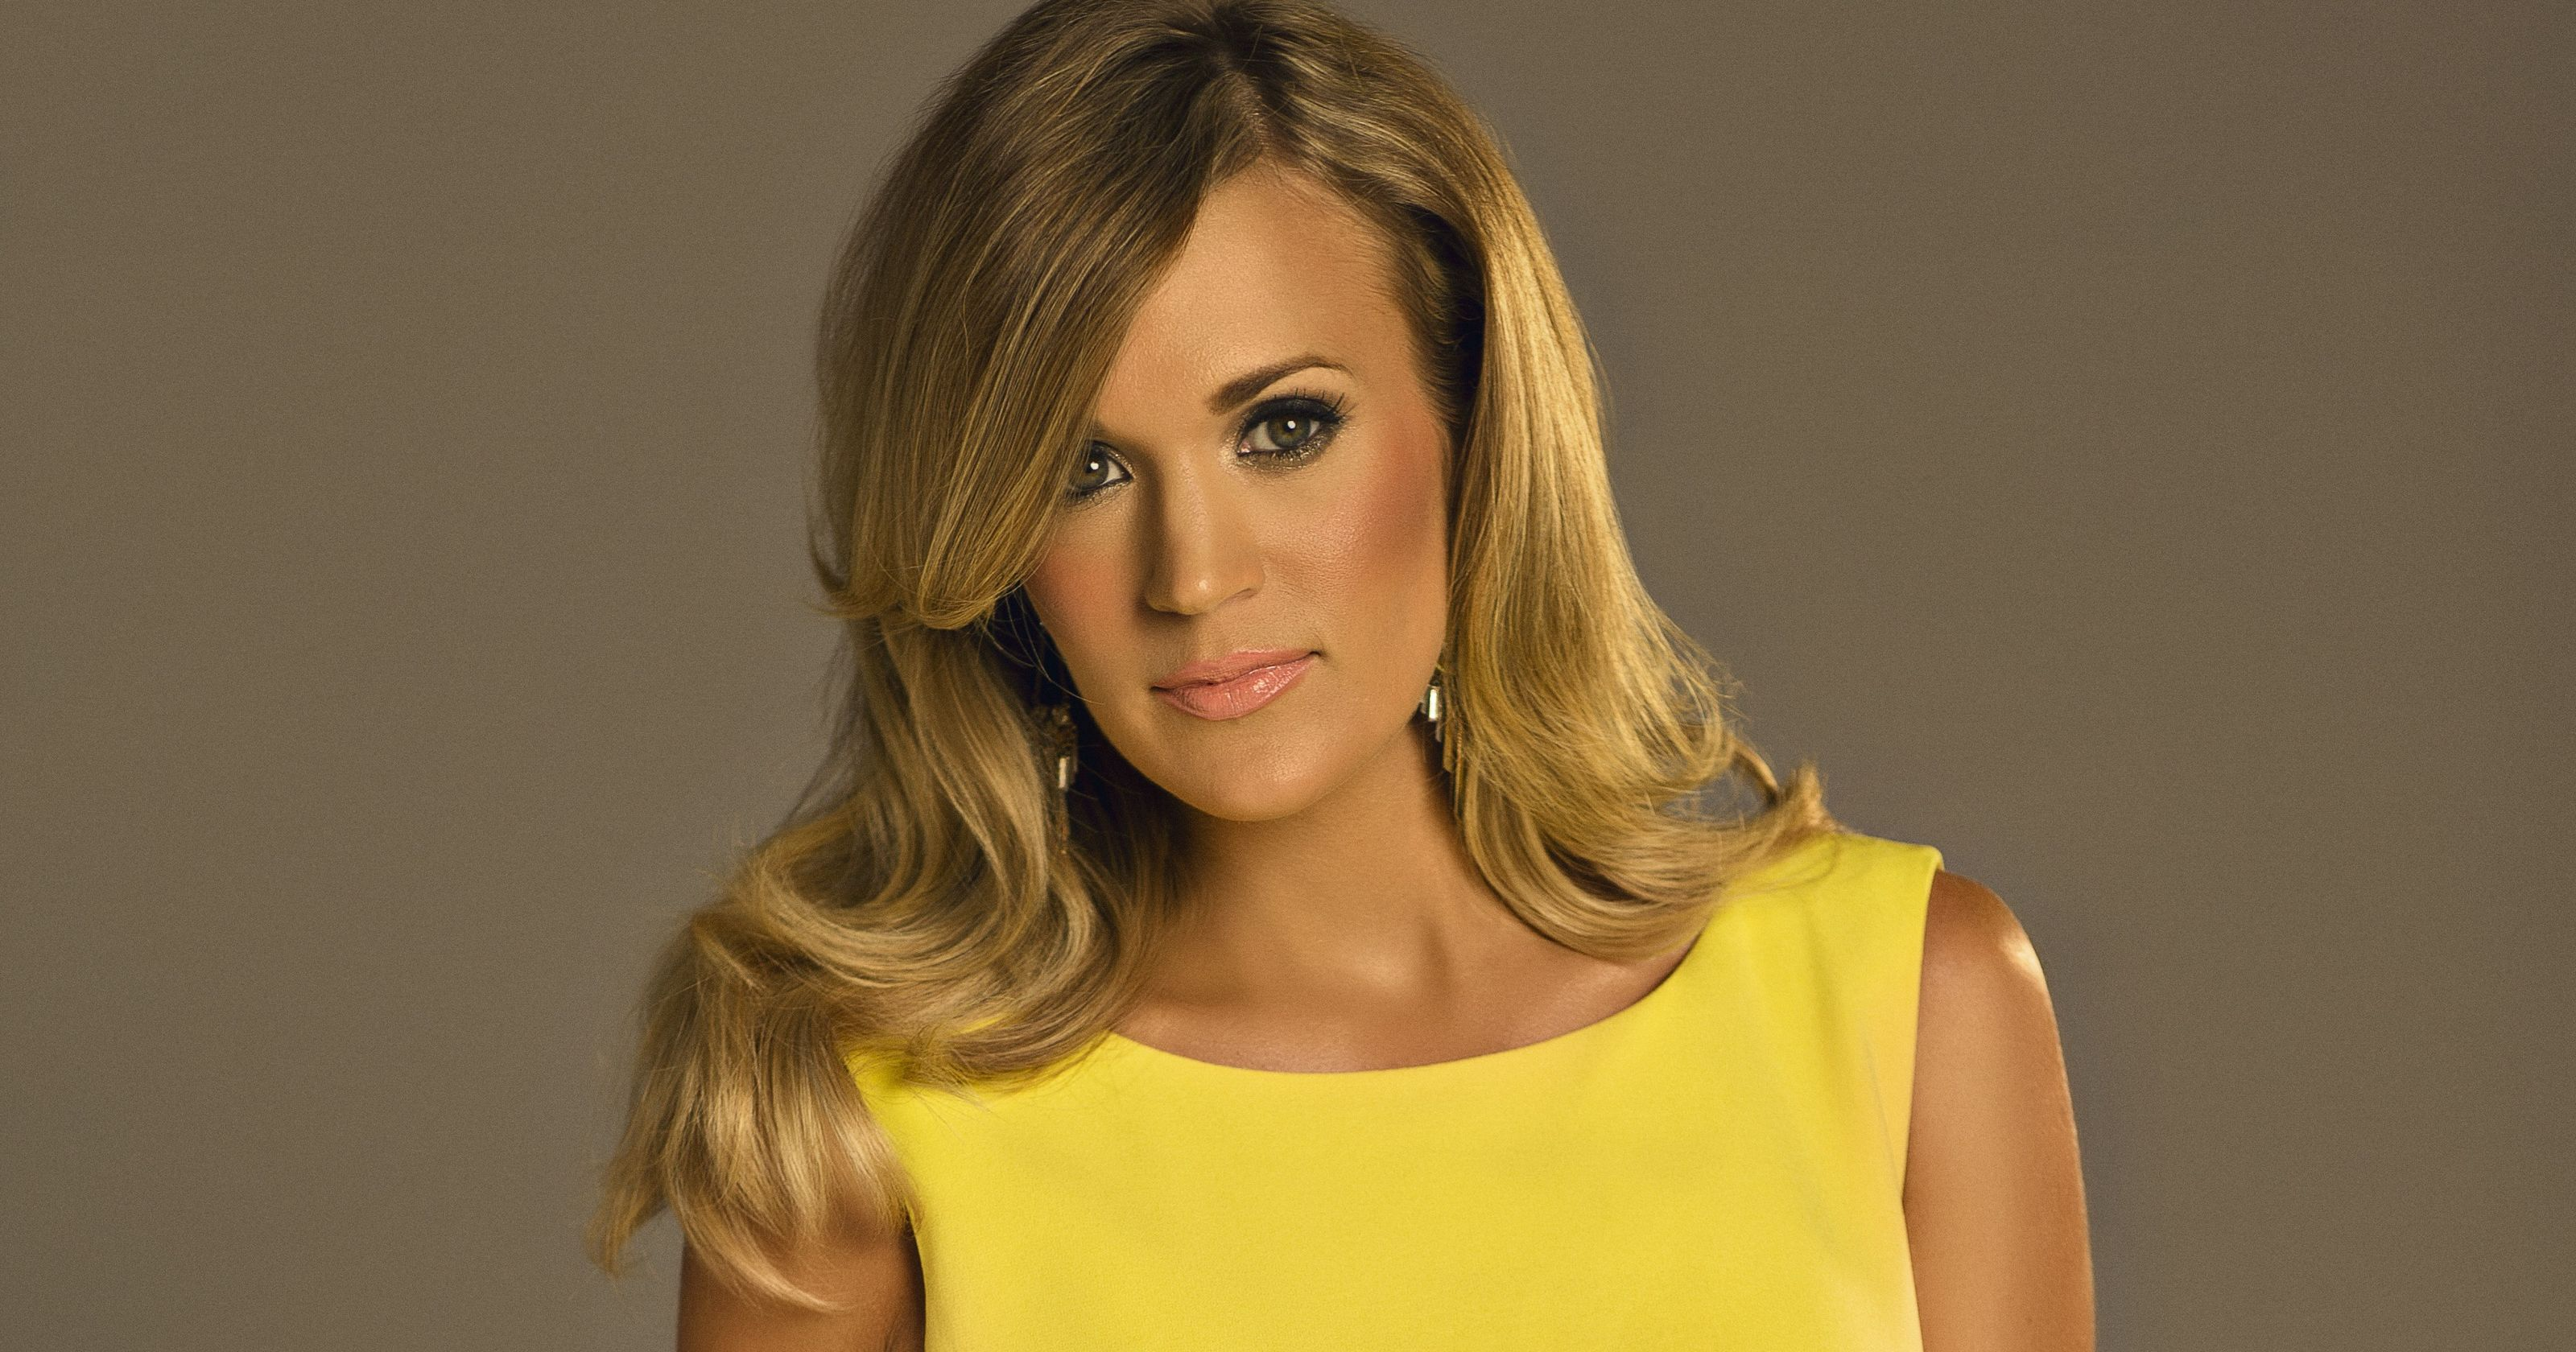 Carrie Underwood Widescreen